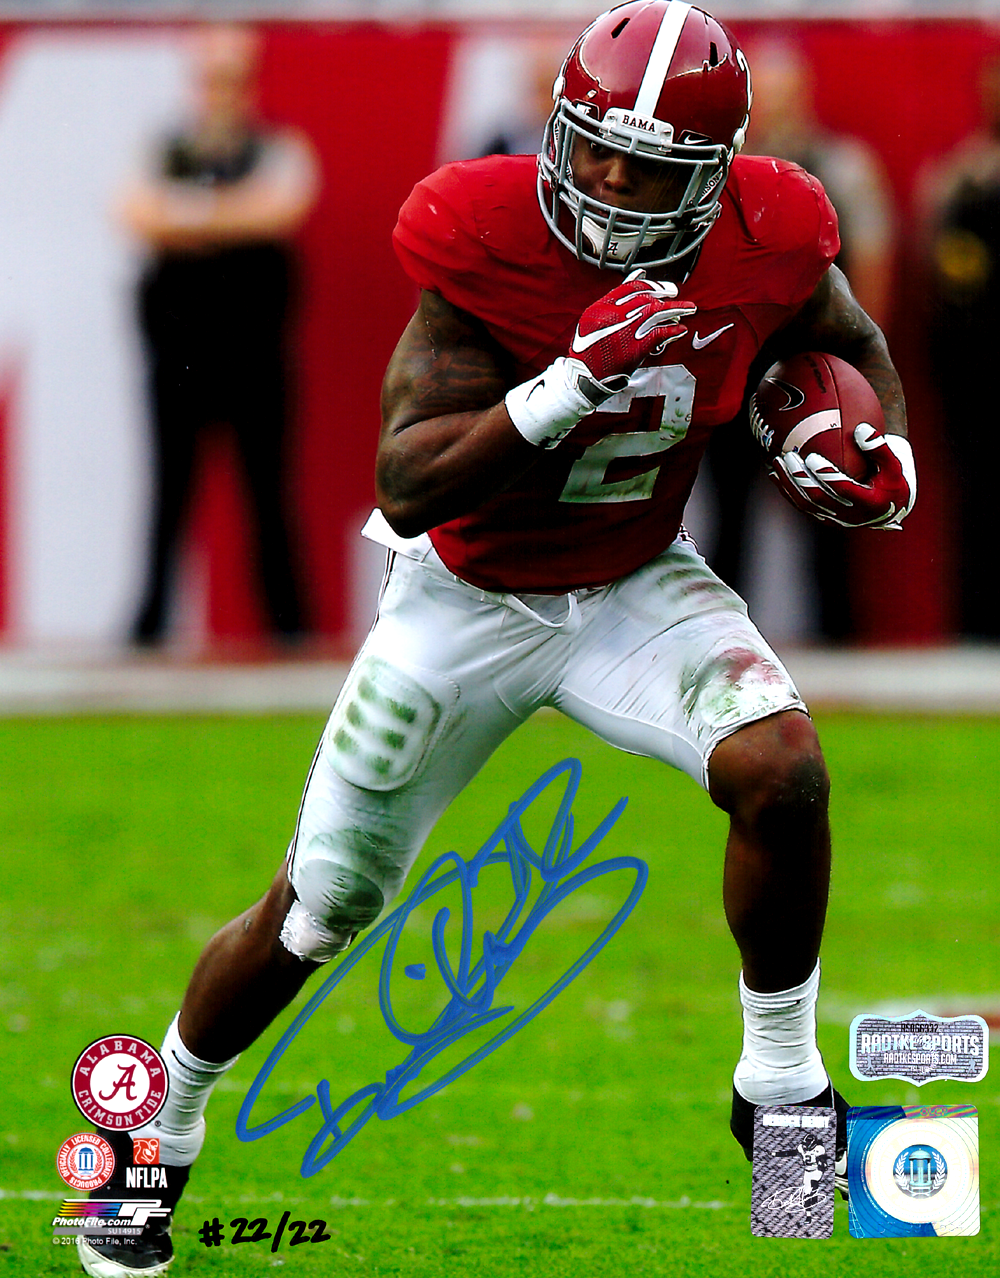 official photos c30a4 12bcf Derrick Henry Signed Alabama Crimson Tide Color 8x10 Photo - Red Jersey -  Limited Edition 22 Of 22